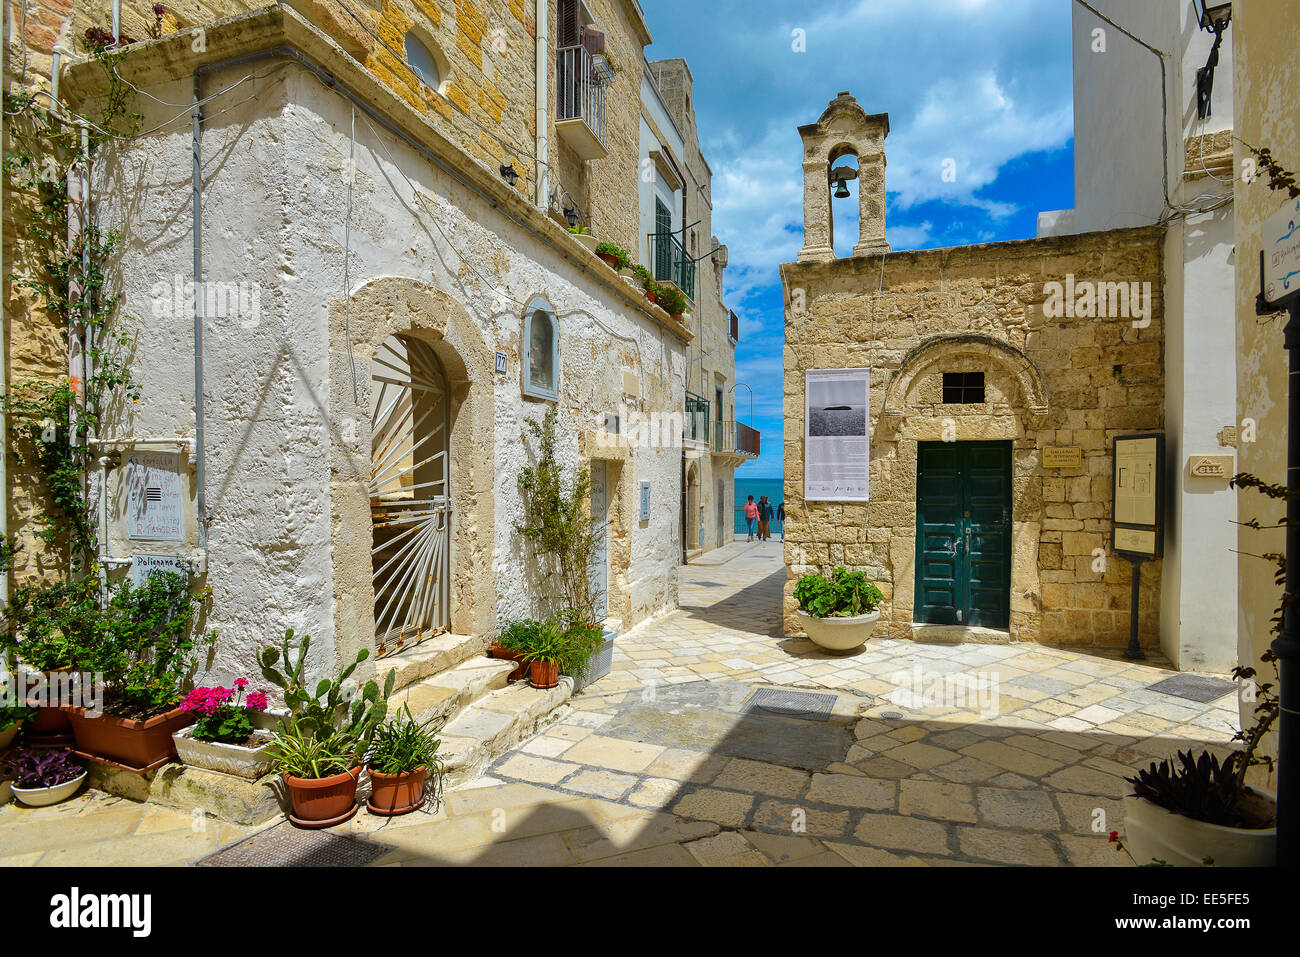 Italy Puglia Apulia Polignano a Mare The Chapel of Saint Stephen now houses an art gallery - Stock Image